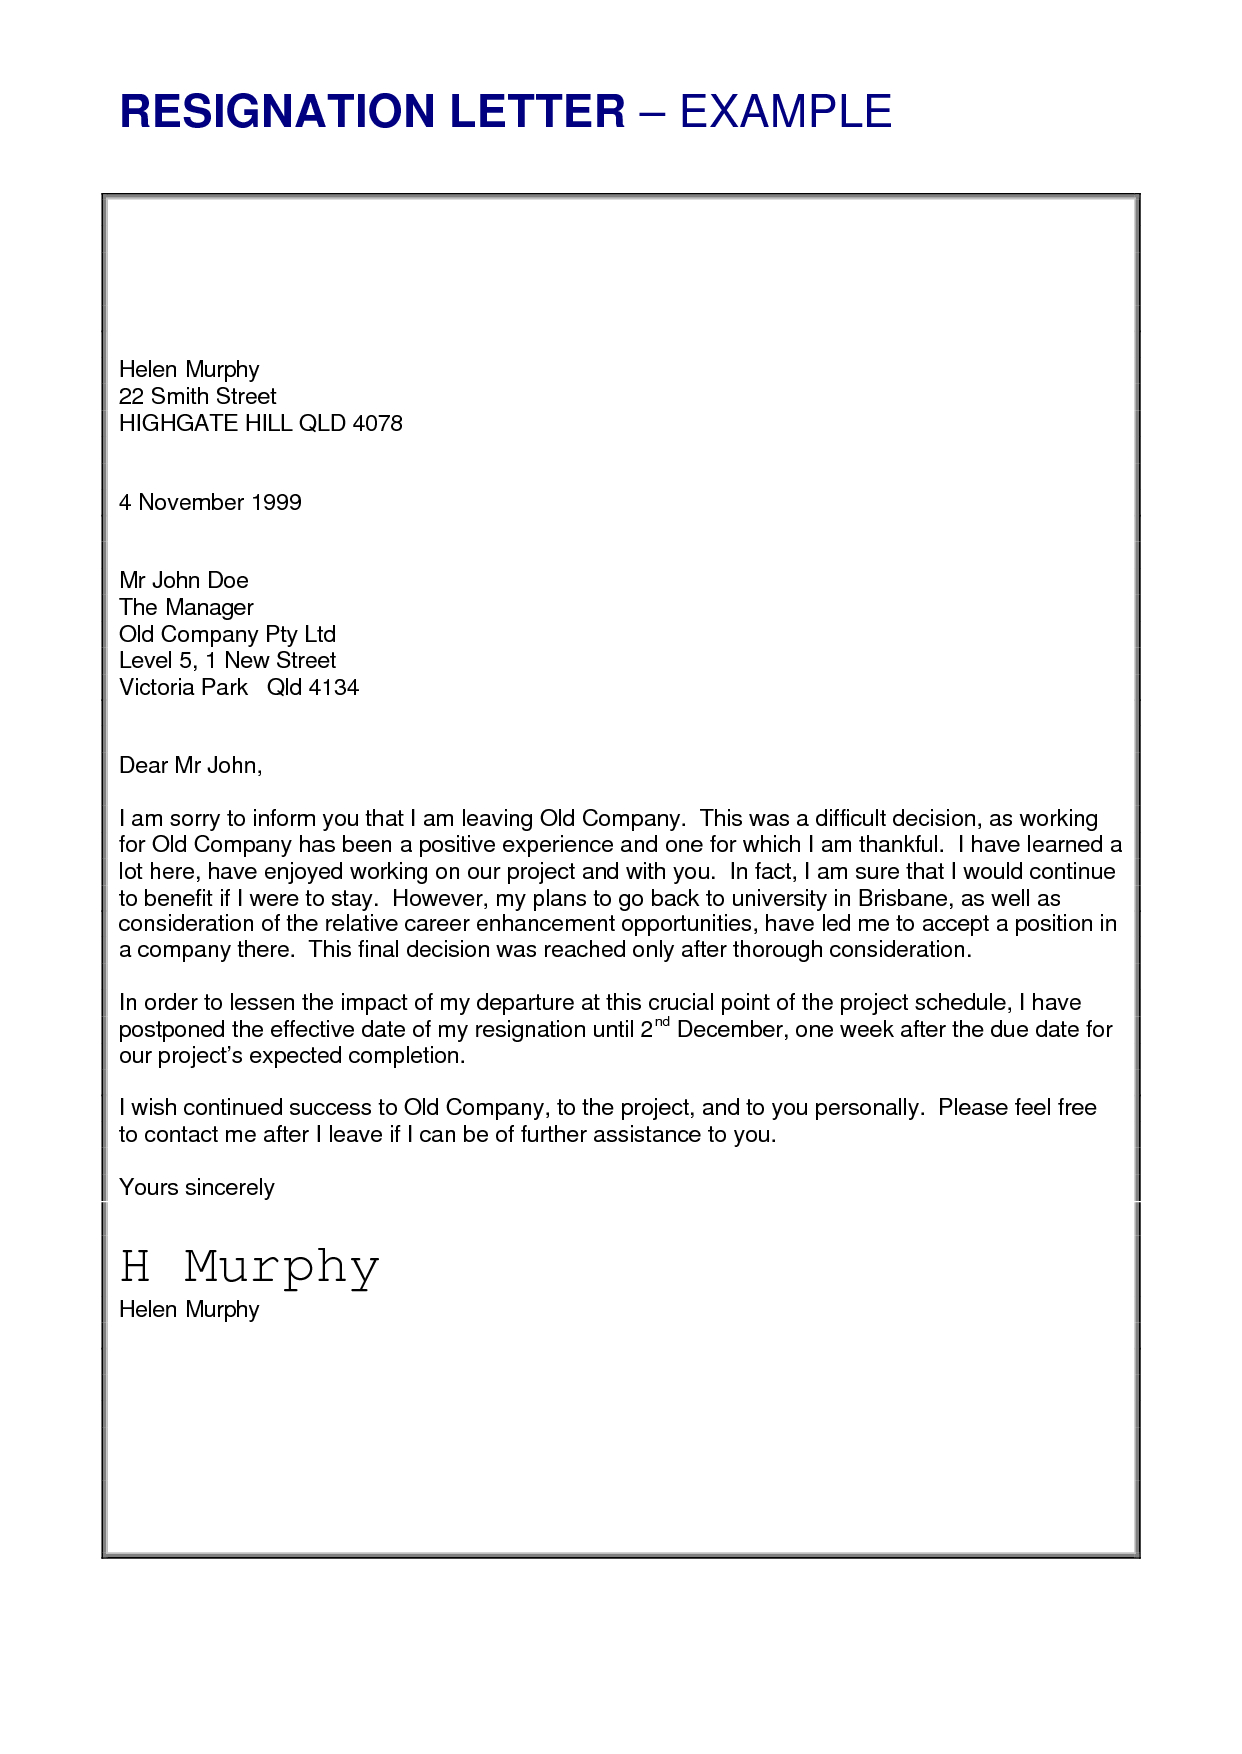 Resignation Letter Template Doc - Job Resignation Letter Sample Loganun Blog Job